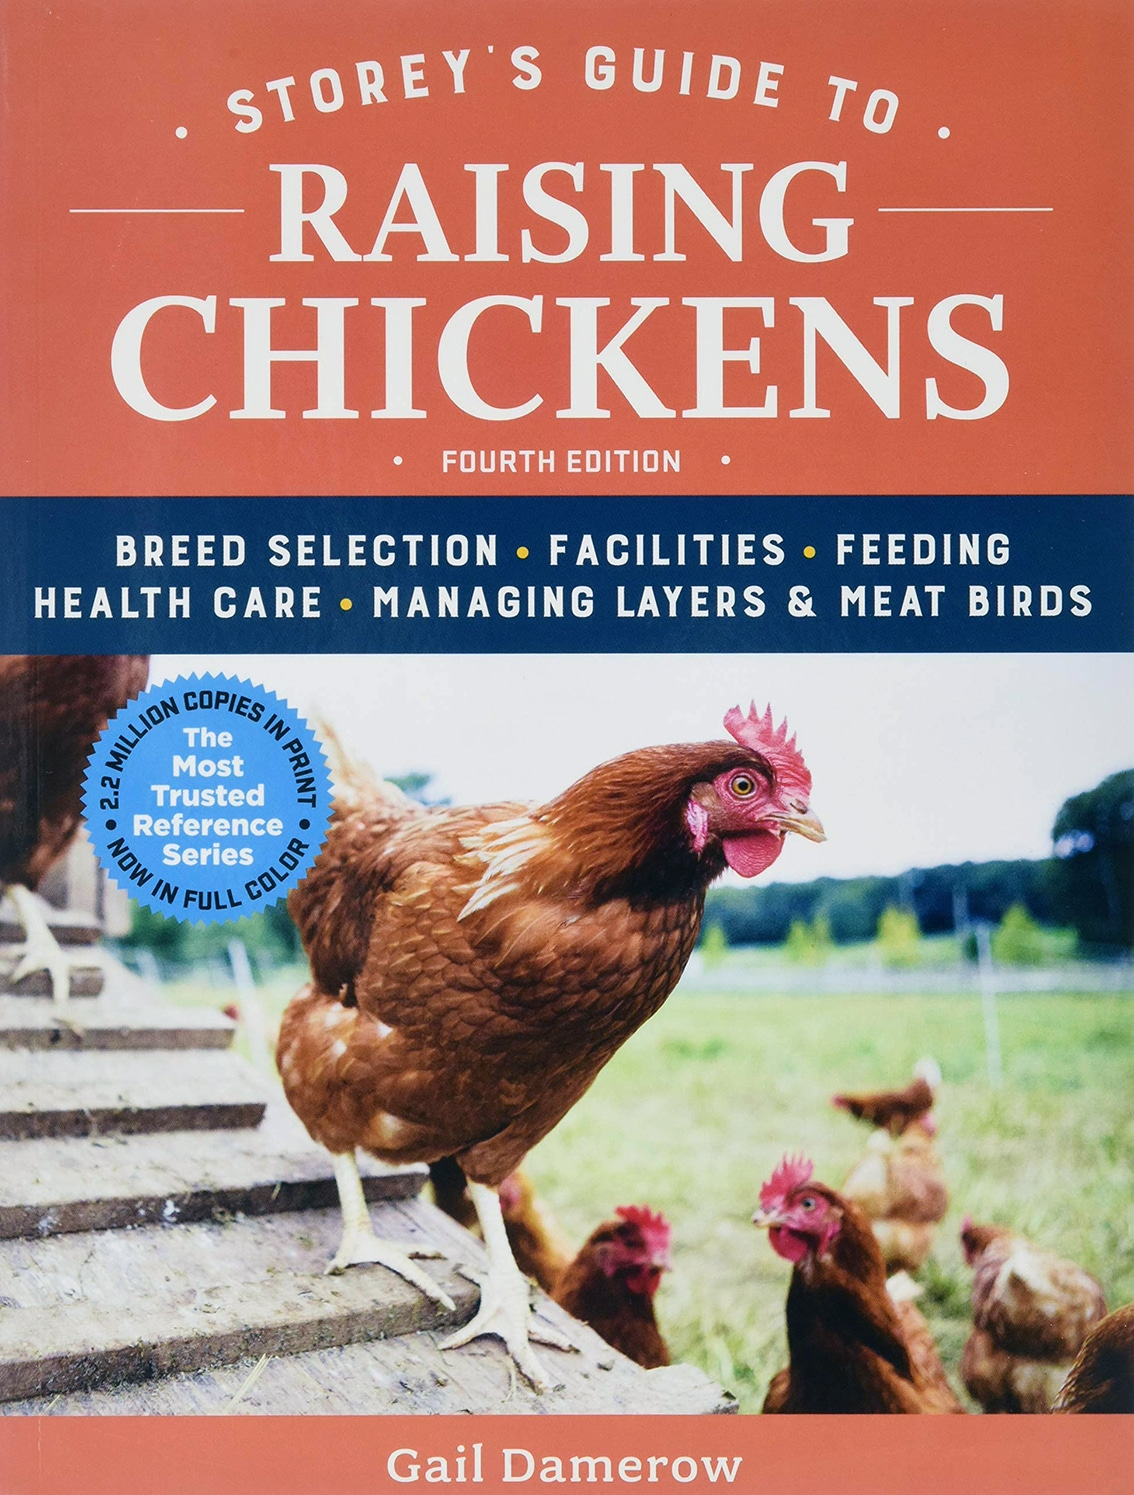 Books about chickens